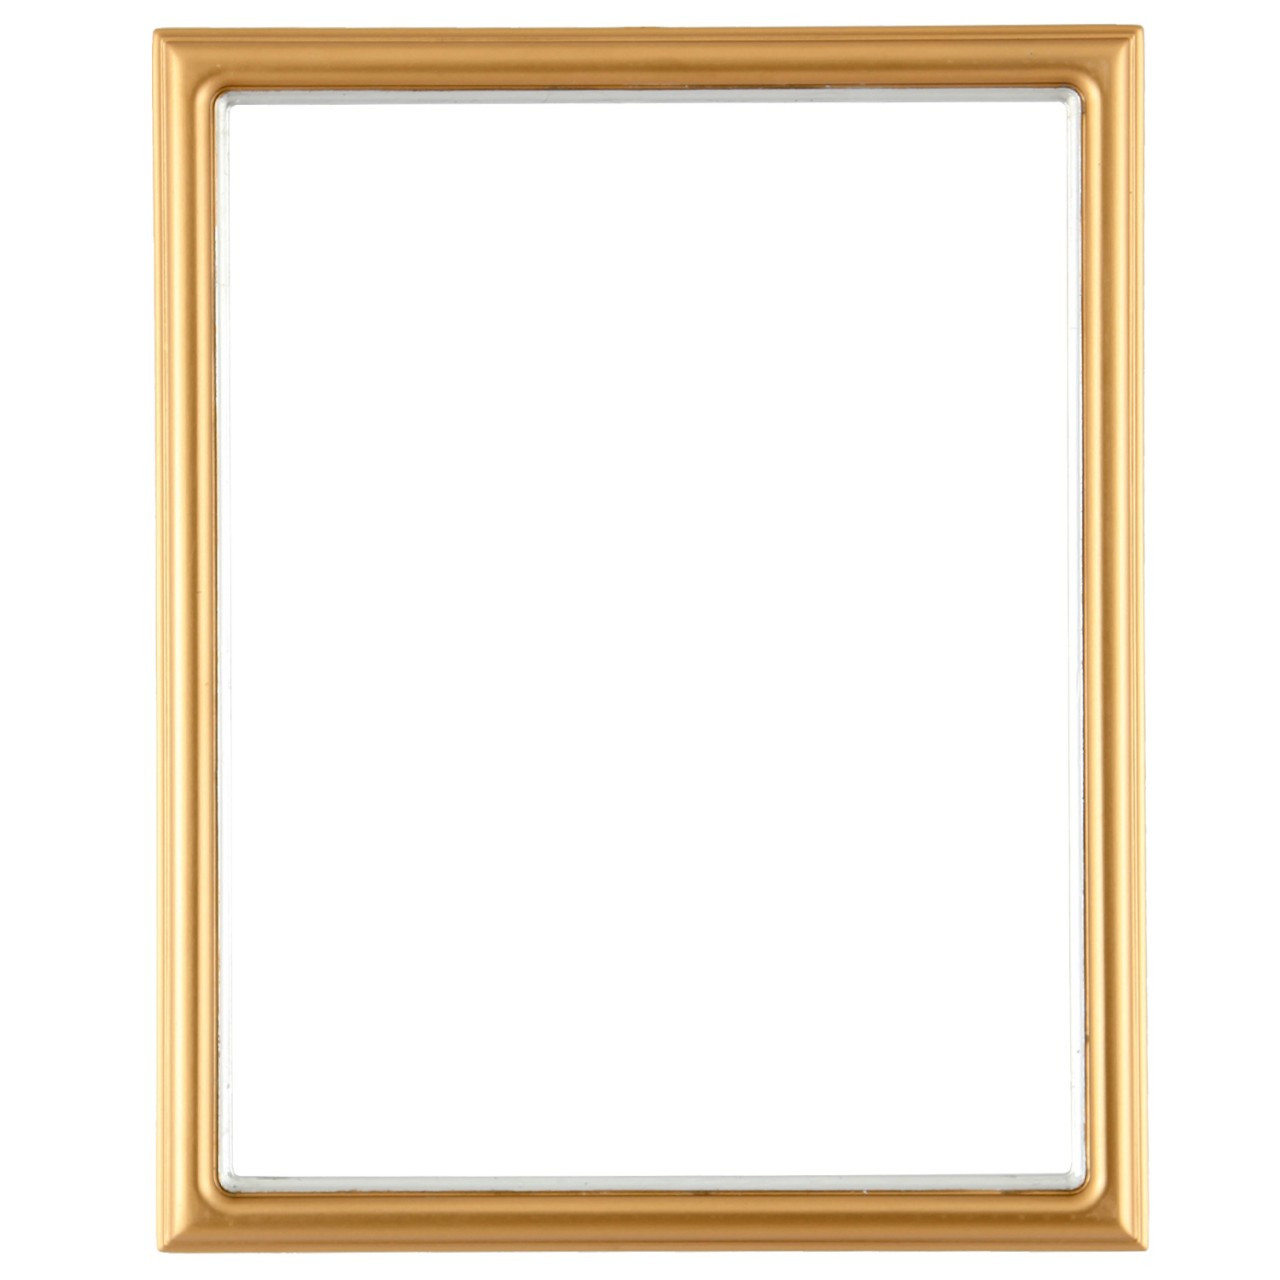 6x8 Acrylic Picture Frames